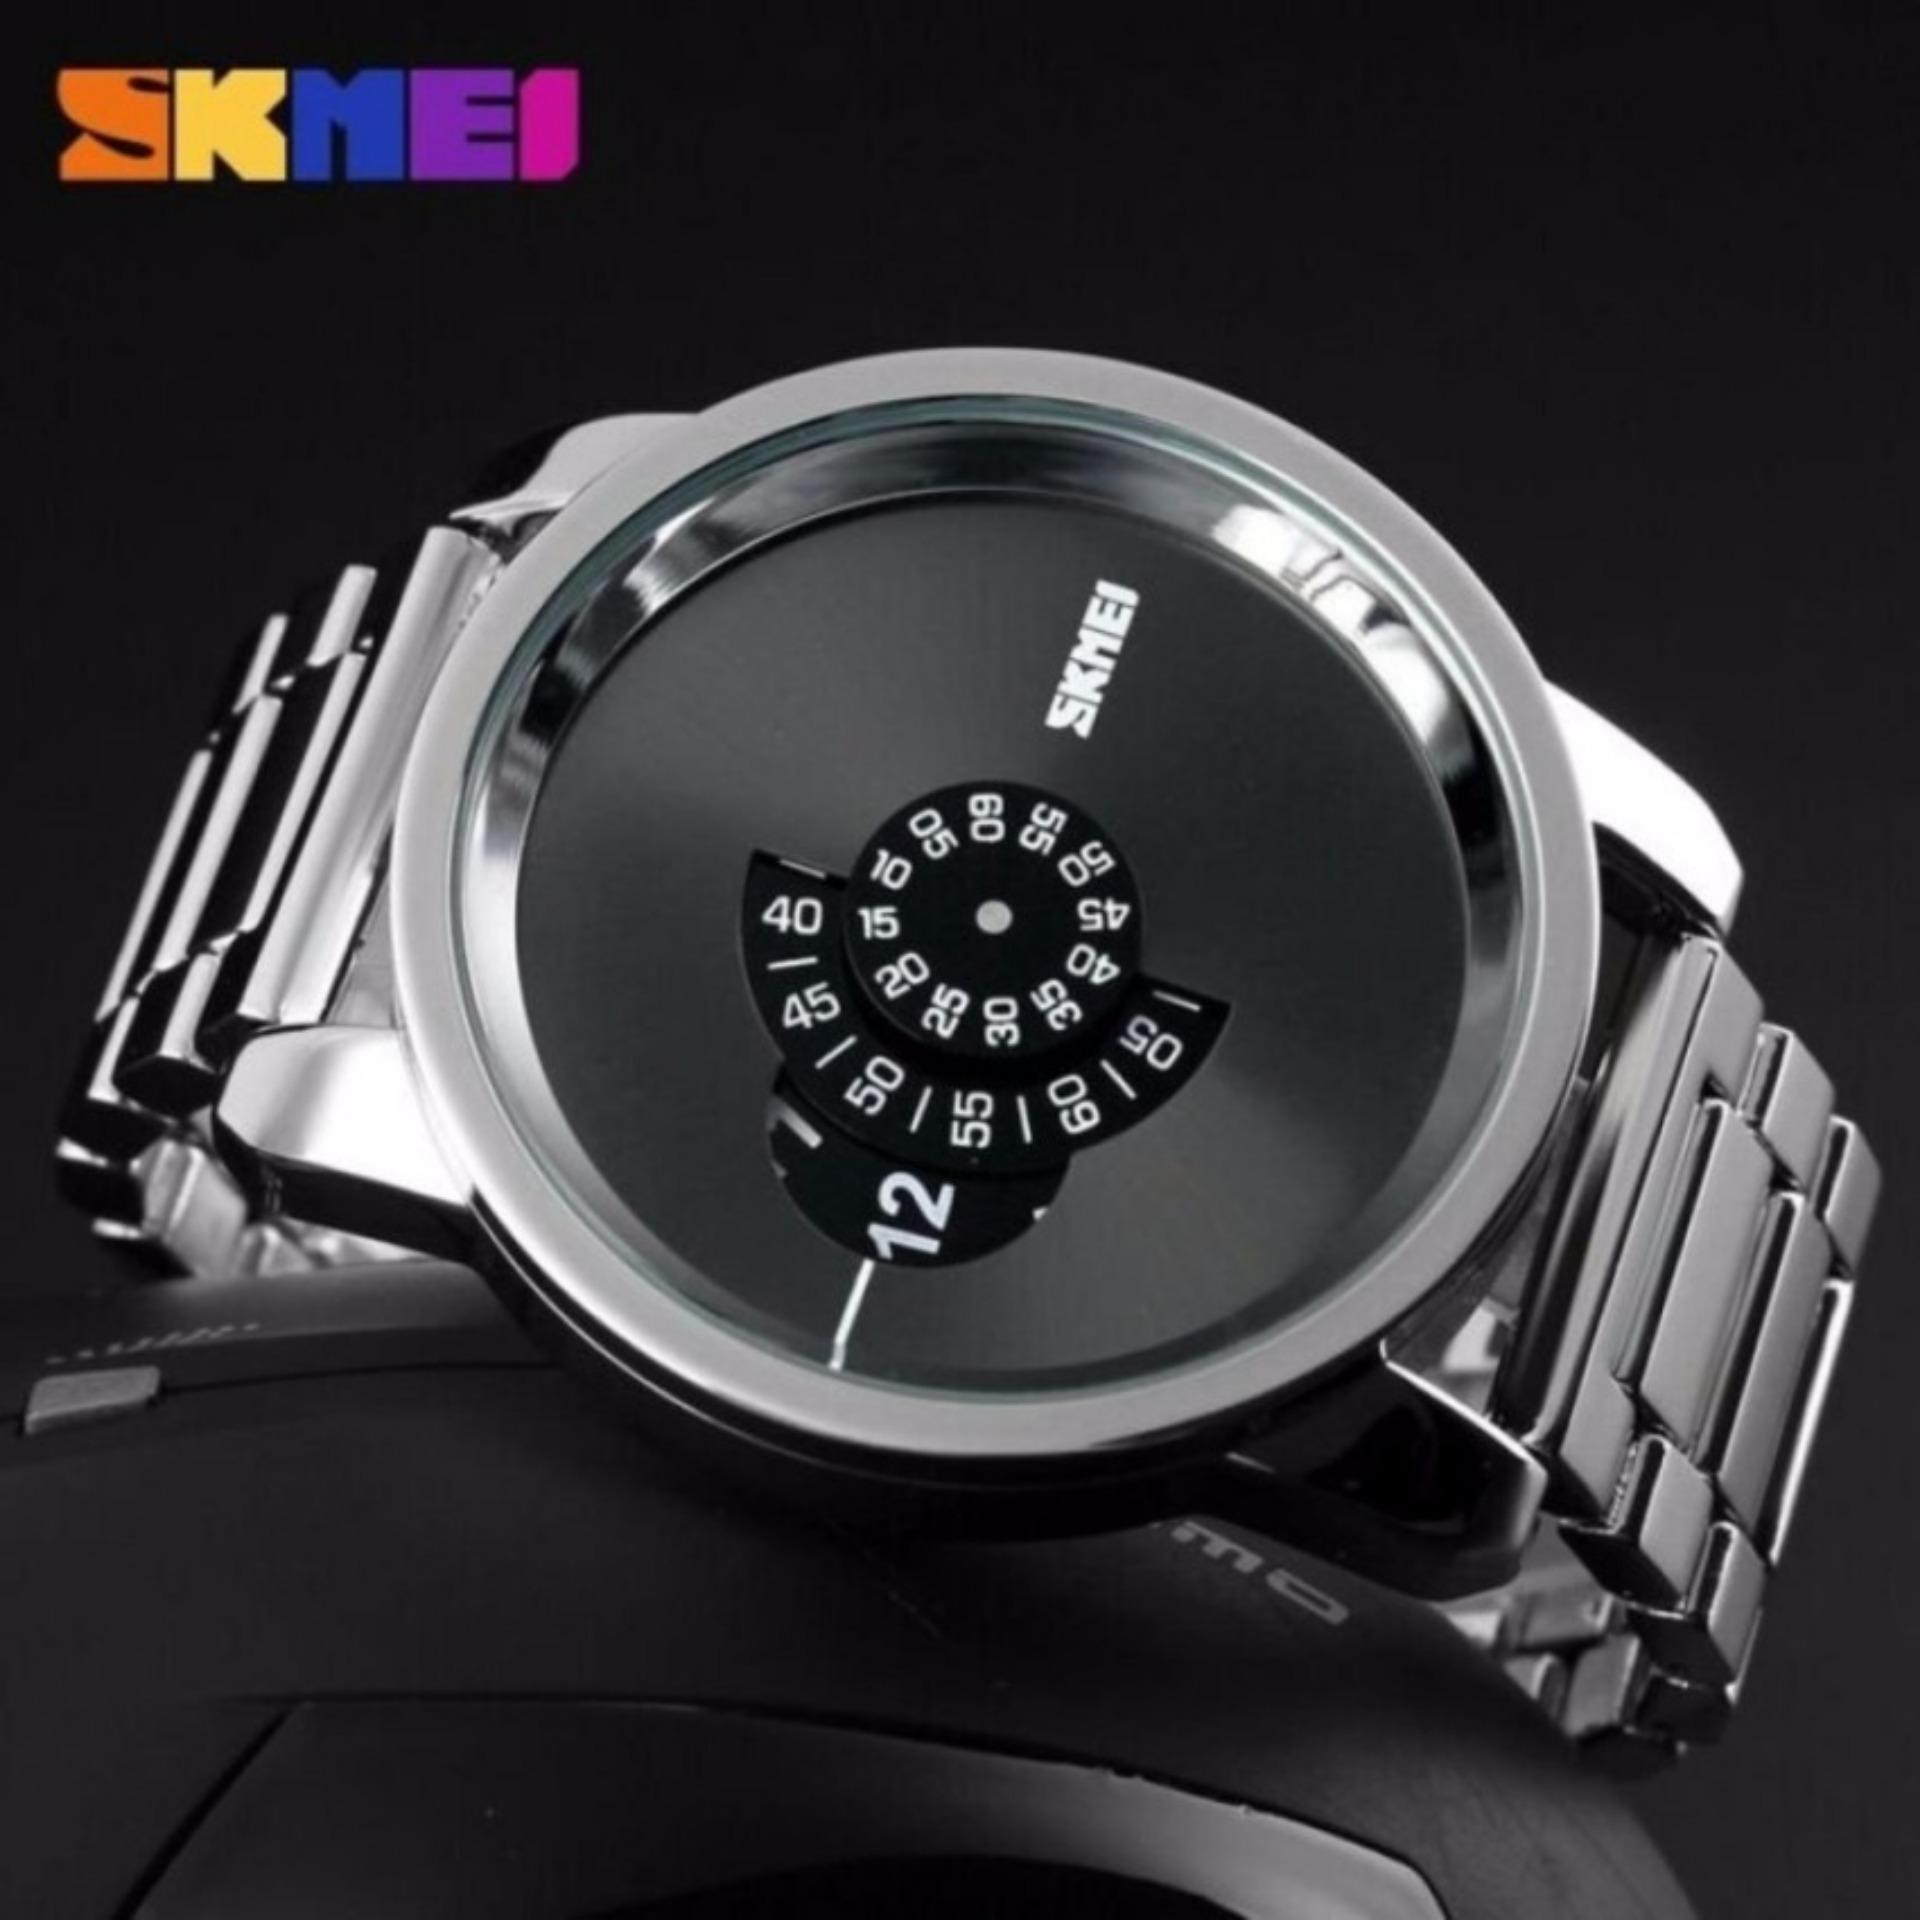 Harga Skmei Casio Man Sport Led Watch Anti Air Water Resistant Wr 30M Ad1171 Jam Tangan Pria Strap Tali Stainless Fashion Unik Wristwatch Wrist Watch Model Baru Trendy Hitam Wk Watch Asli